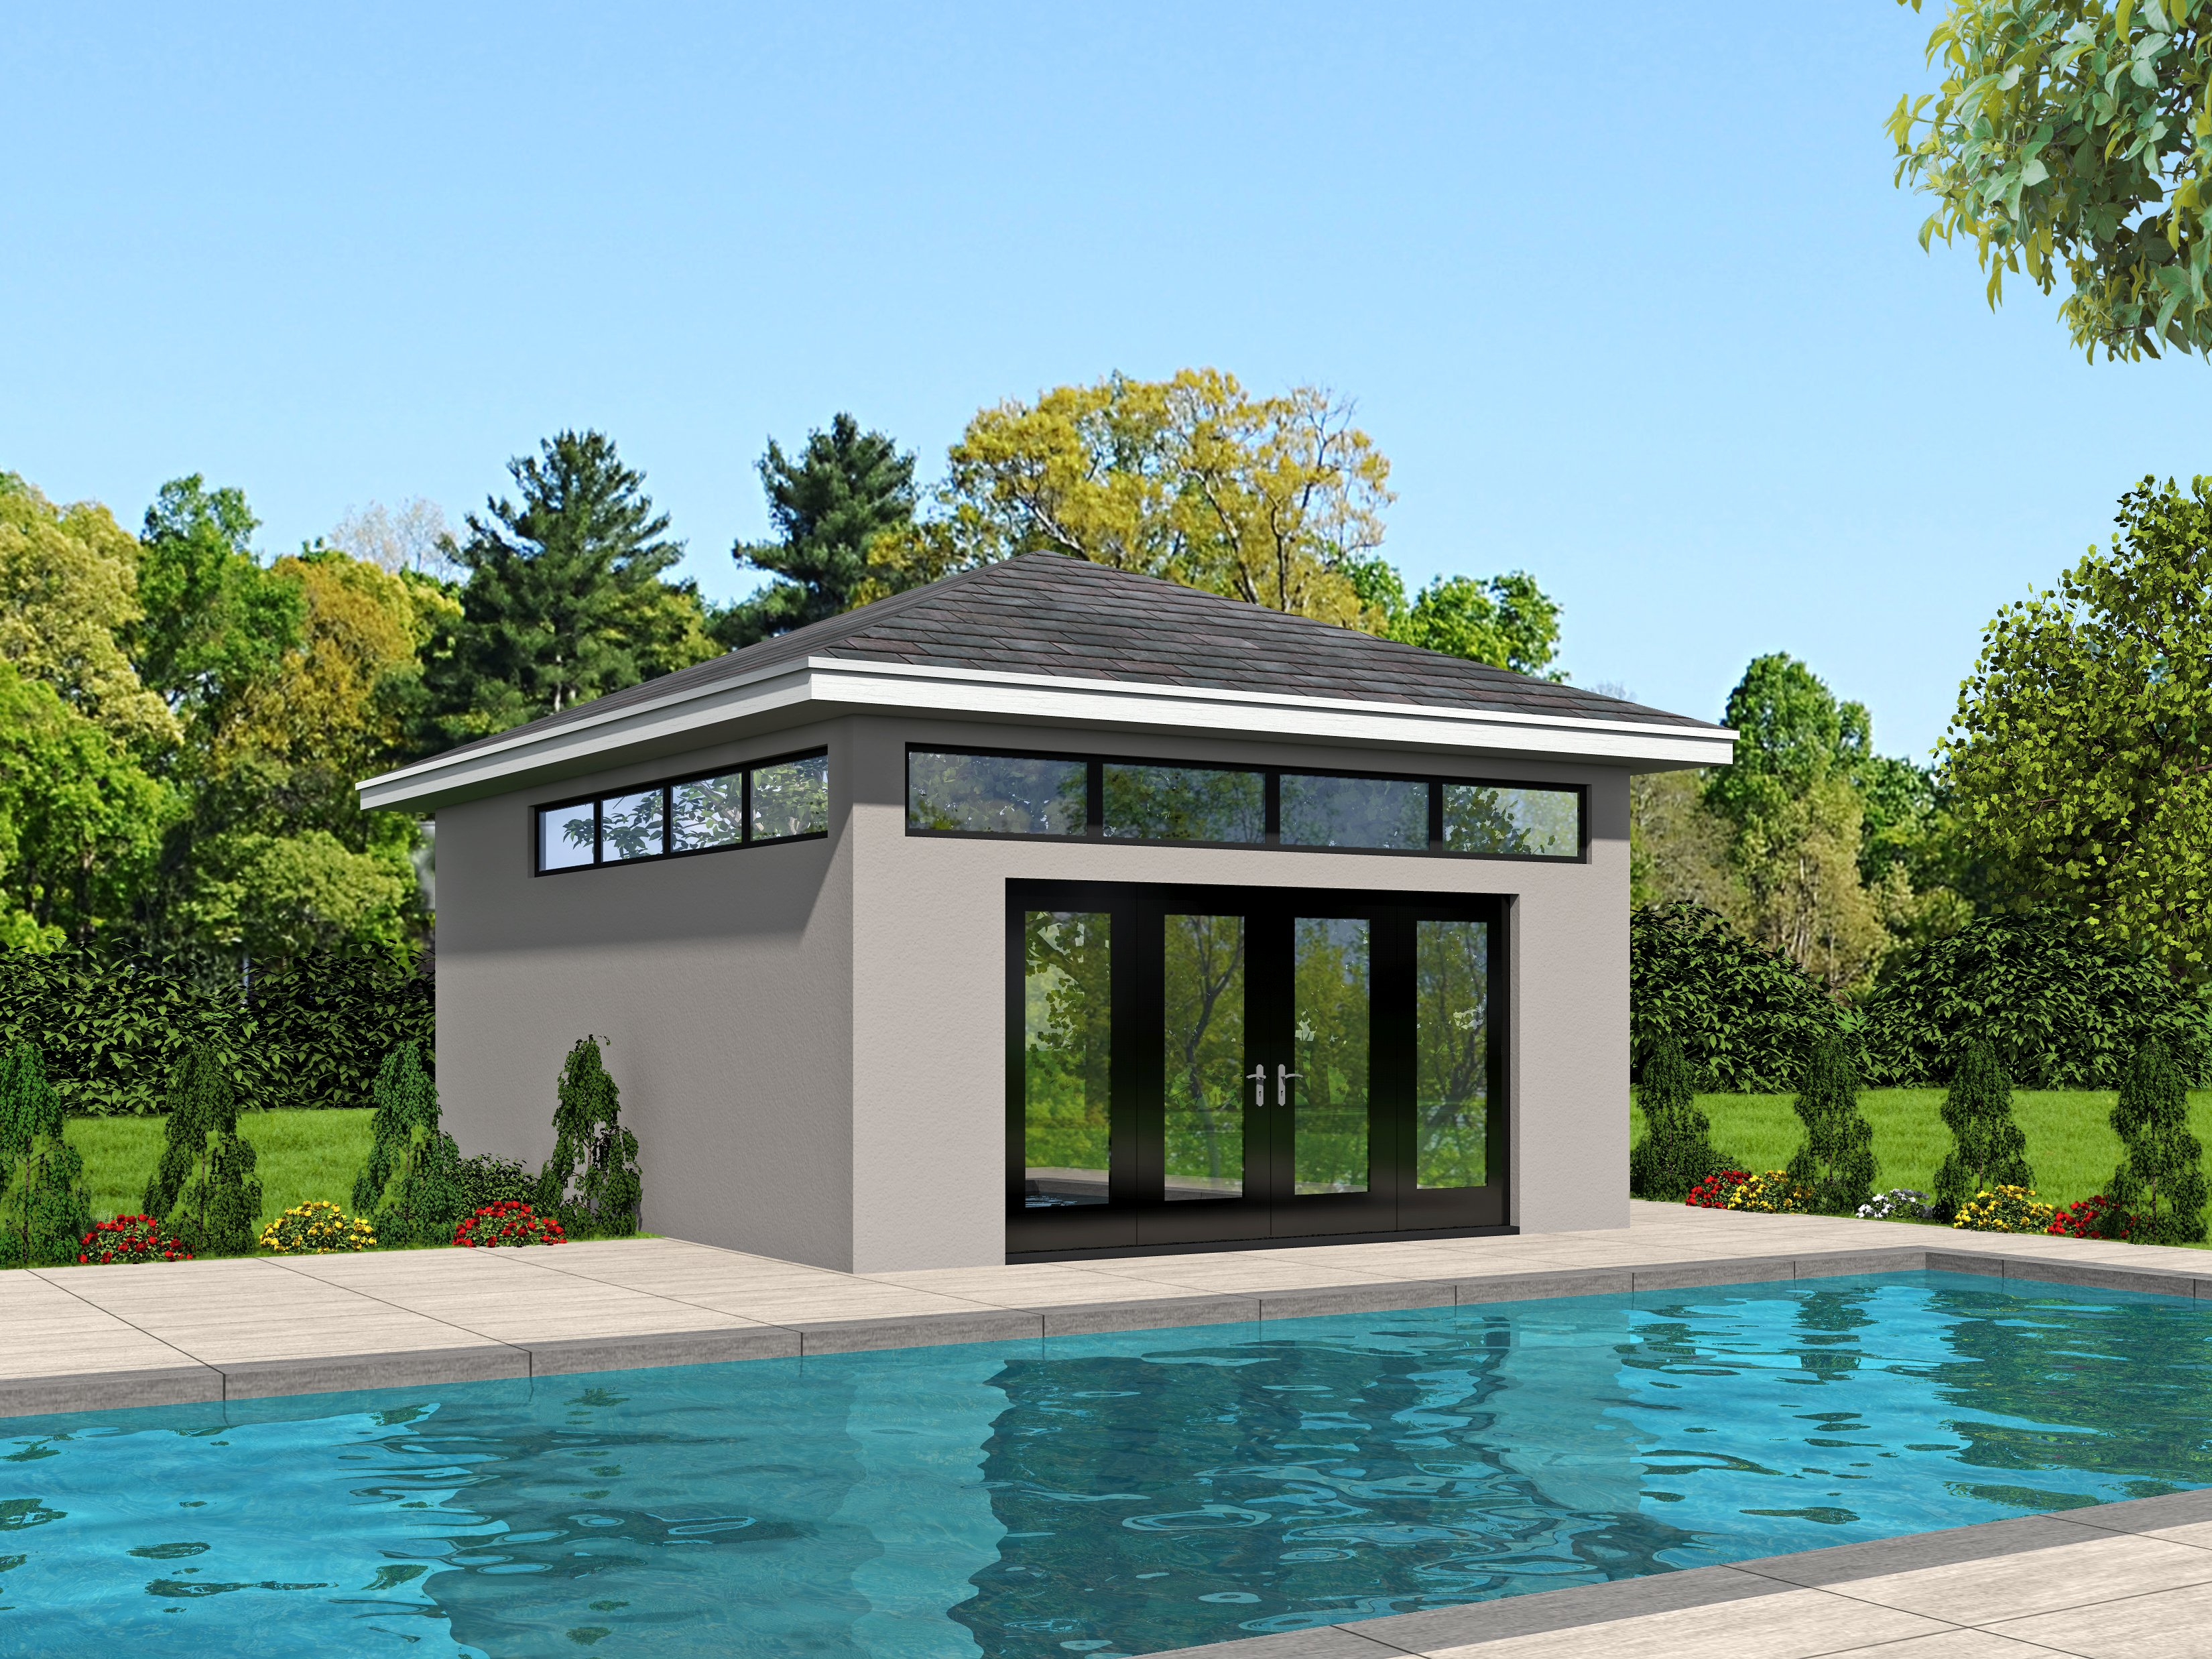 Pool house plans house plans plus for Florida house plans with pool